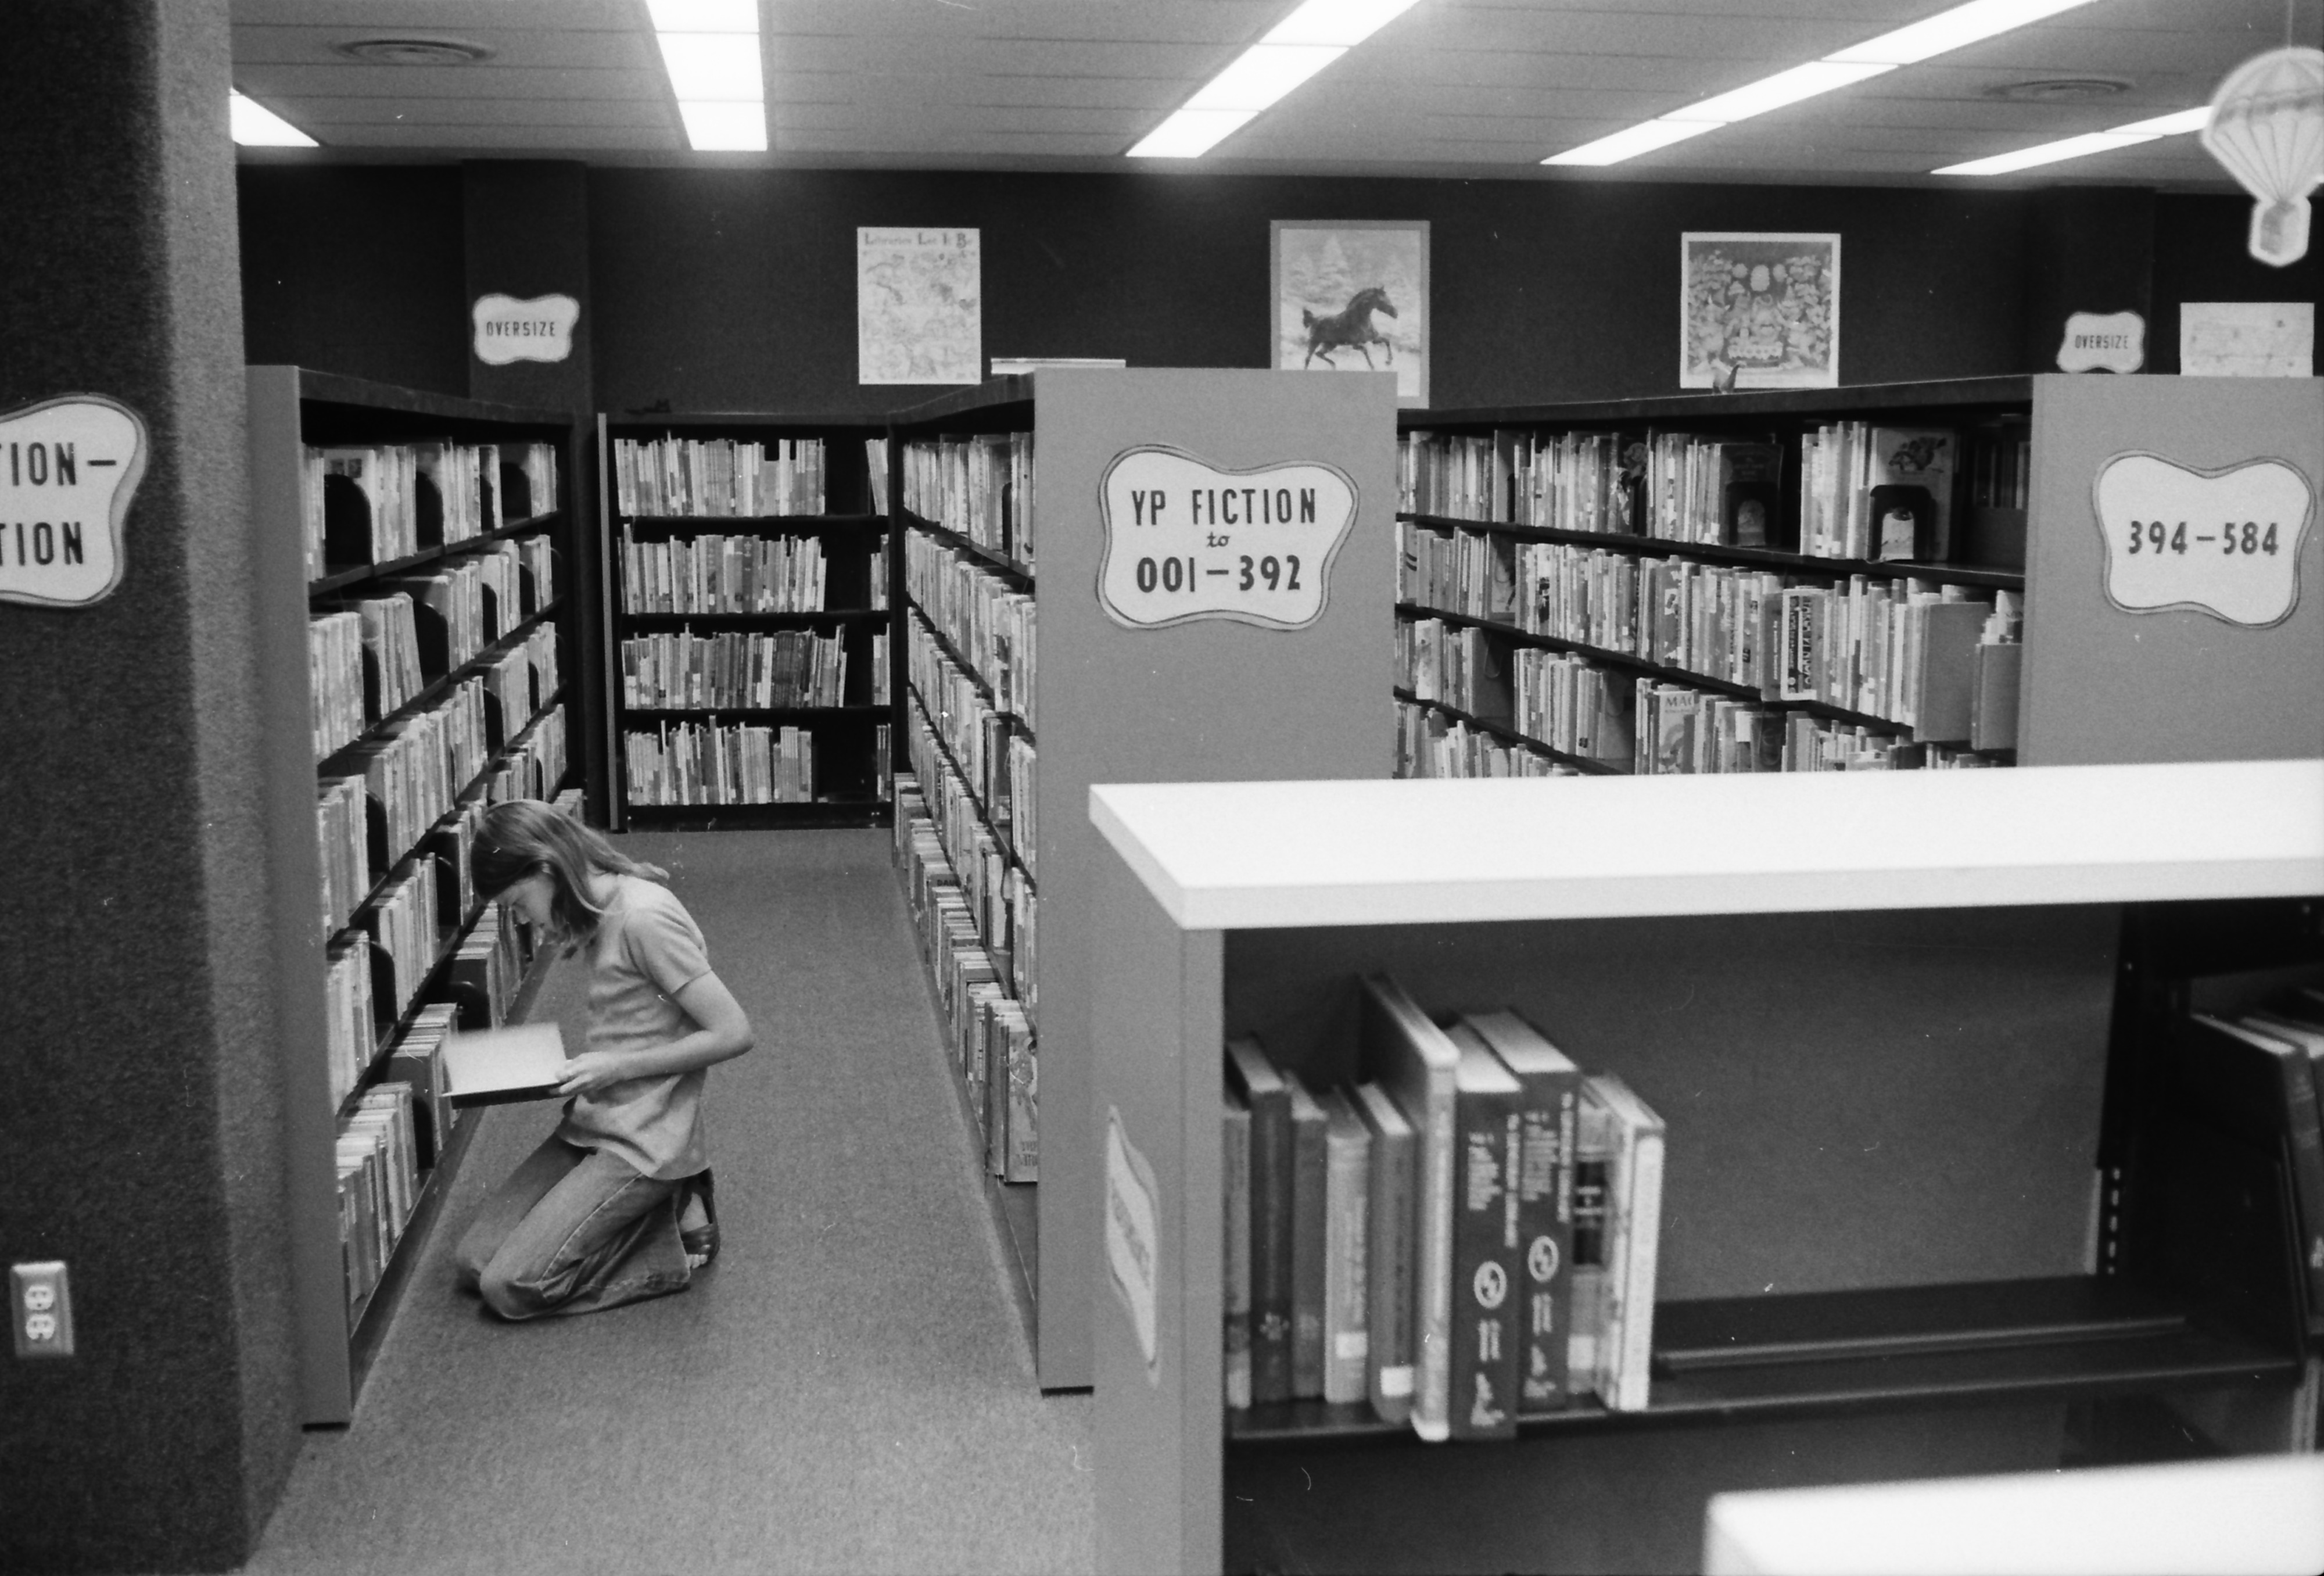 Kathy Brewer Browsing a Book in the Children's Department in the New Addition at the Ann Arbor Public Library, 343 S Fifth Ave, July 1974 image